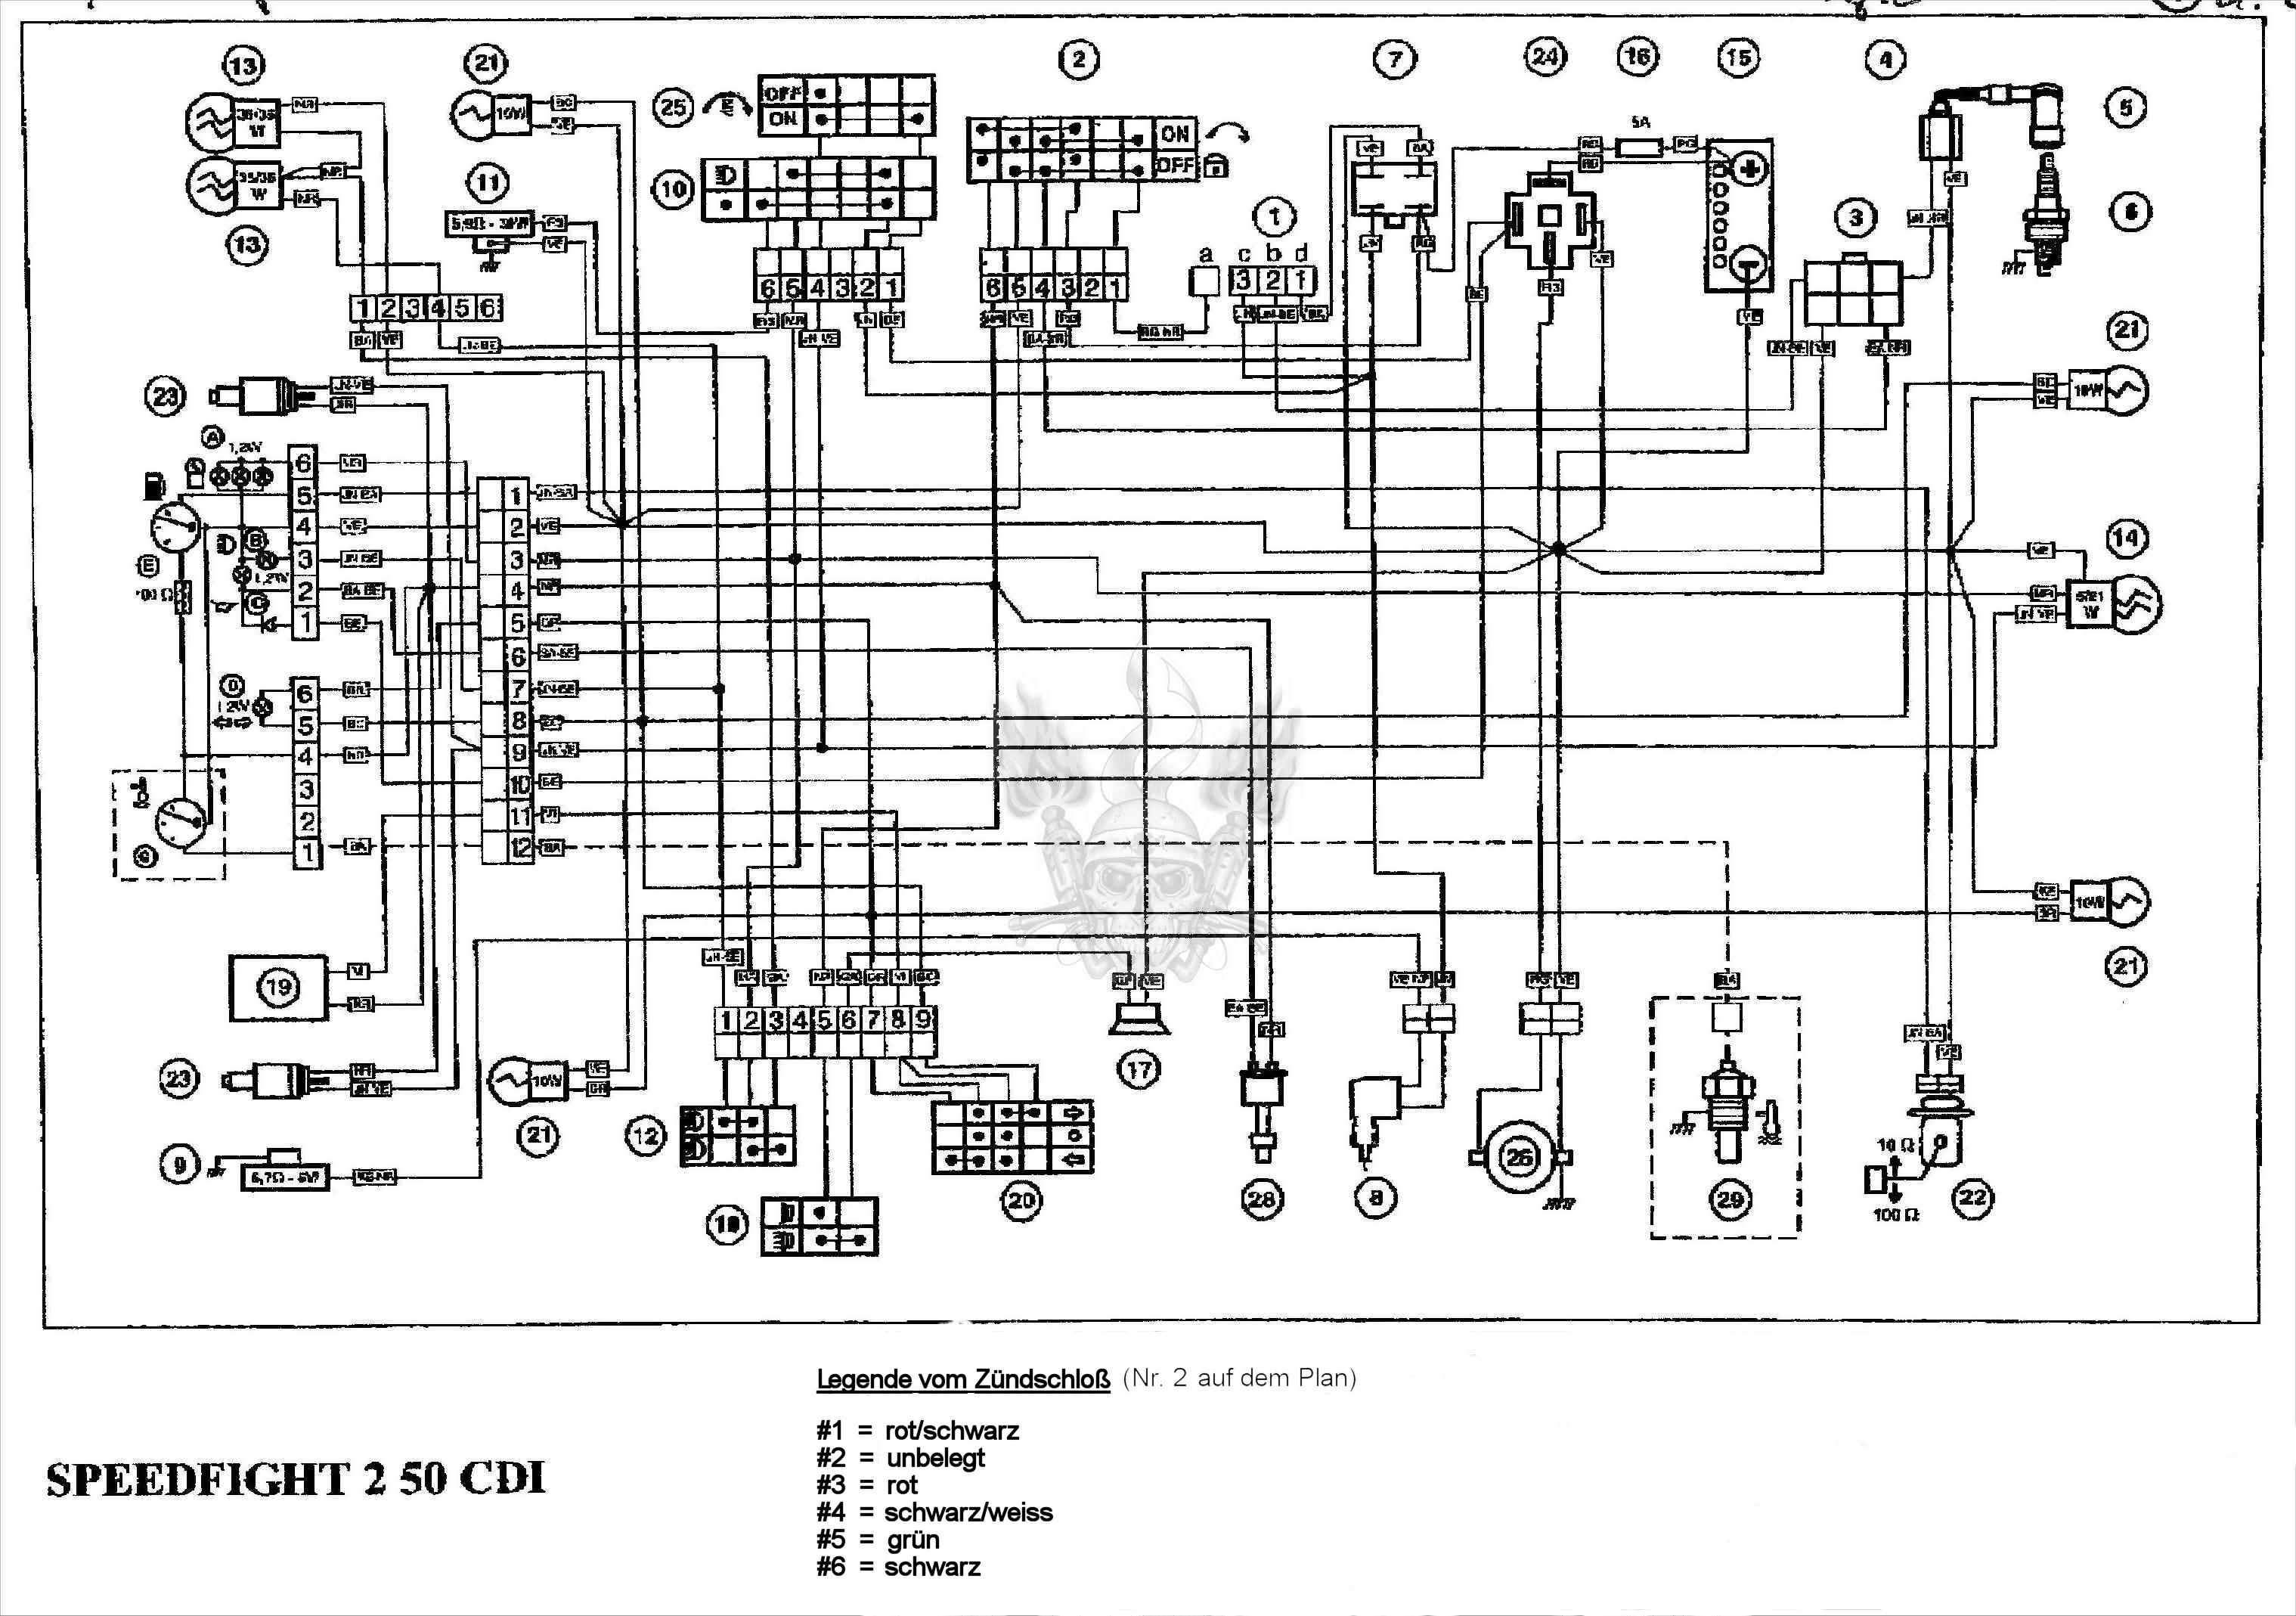 moto_schem_Peugeot_Sdfight_2 Quasar Electric Scooter Wiring Diagram on ford pantera, total ev, e150 razor, razor pocket mod, razor mod,